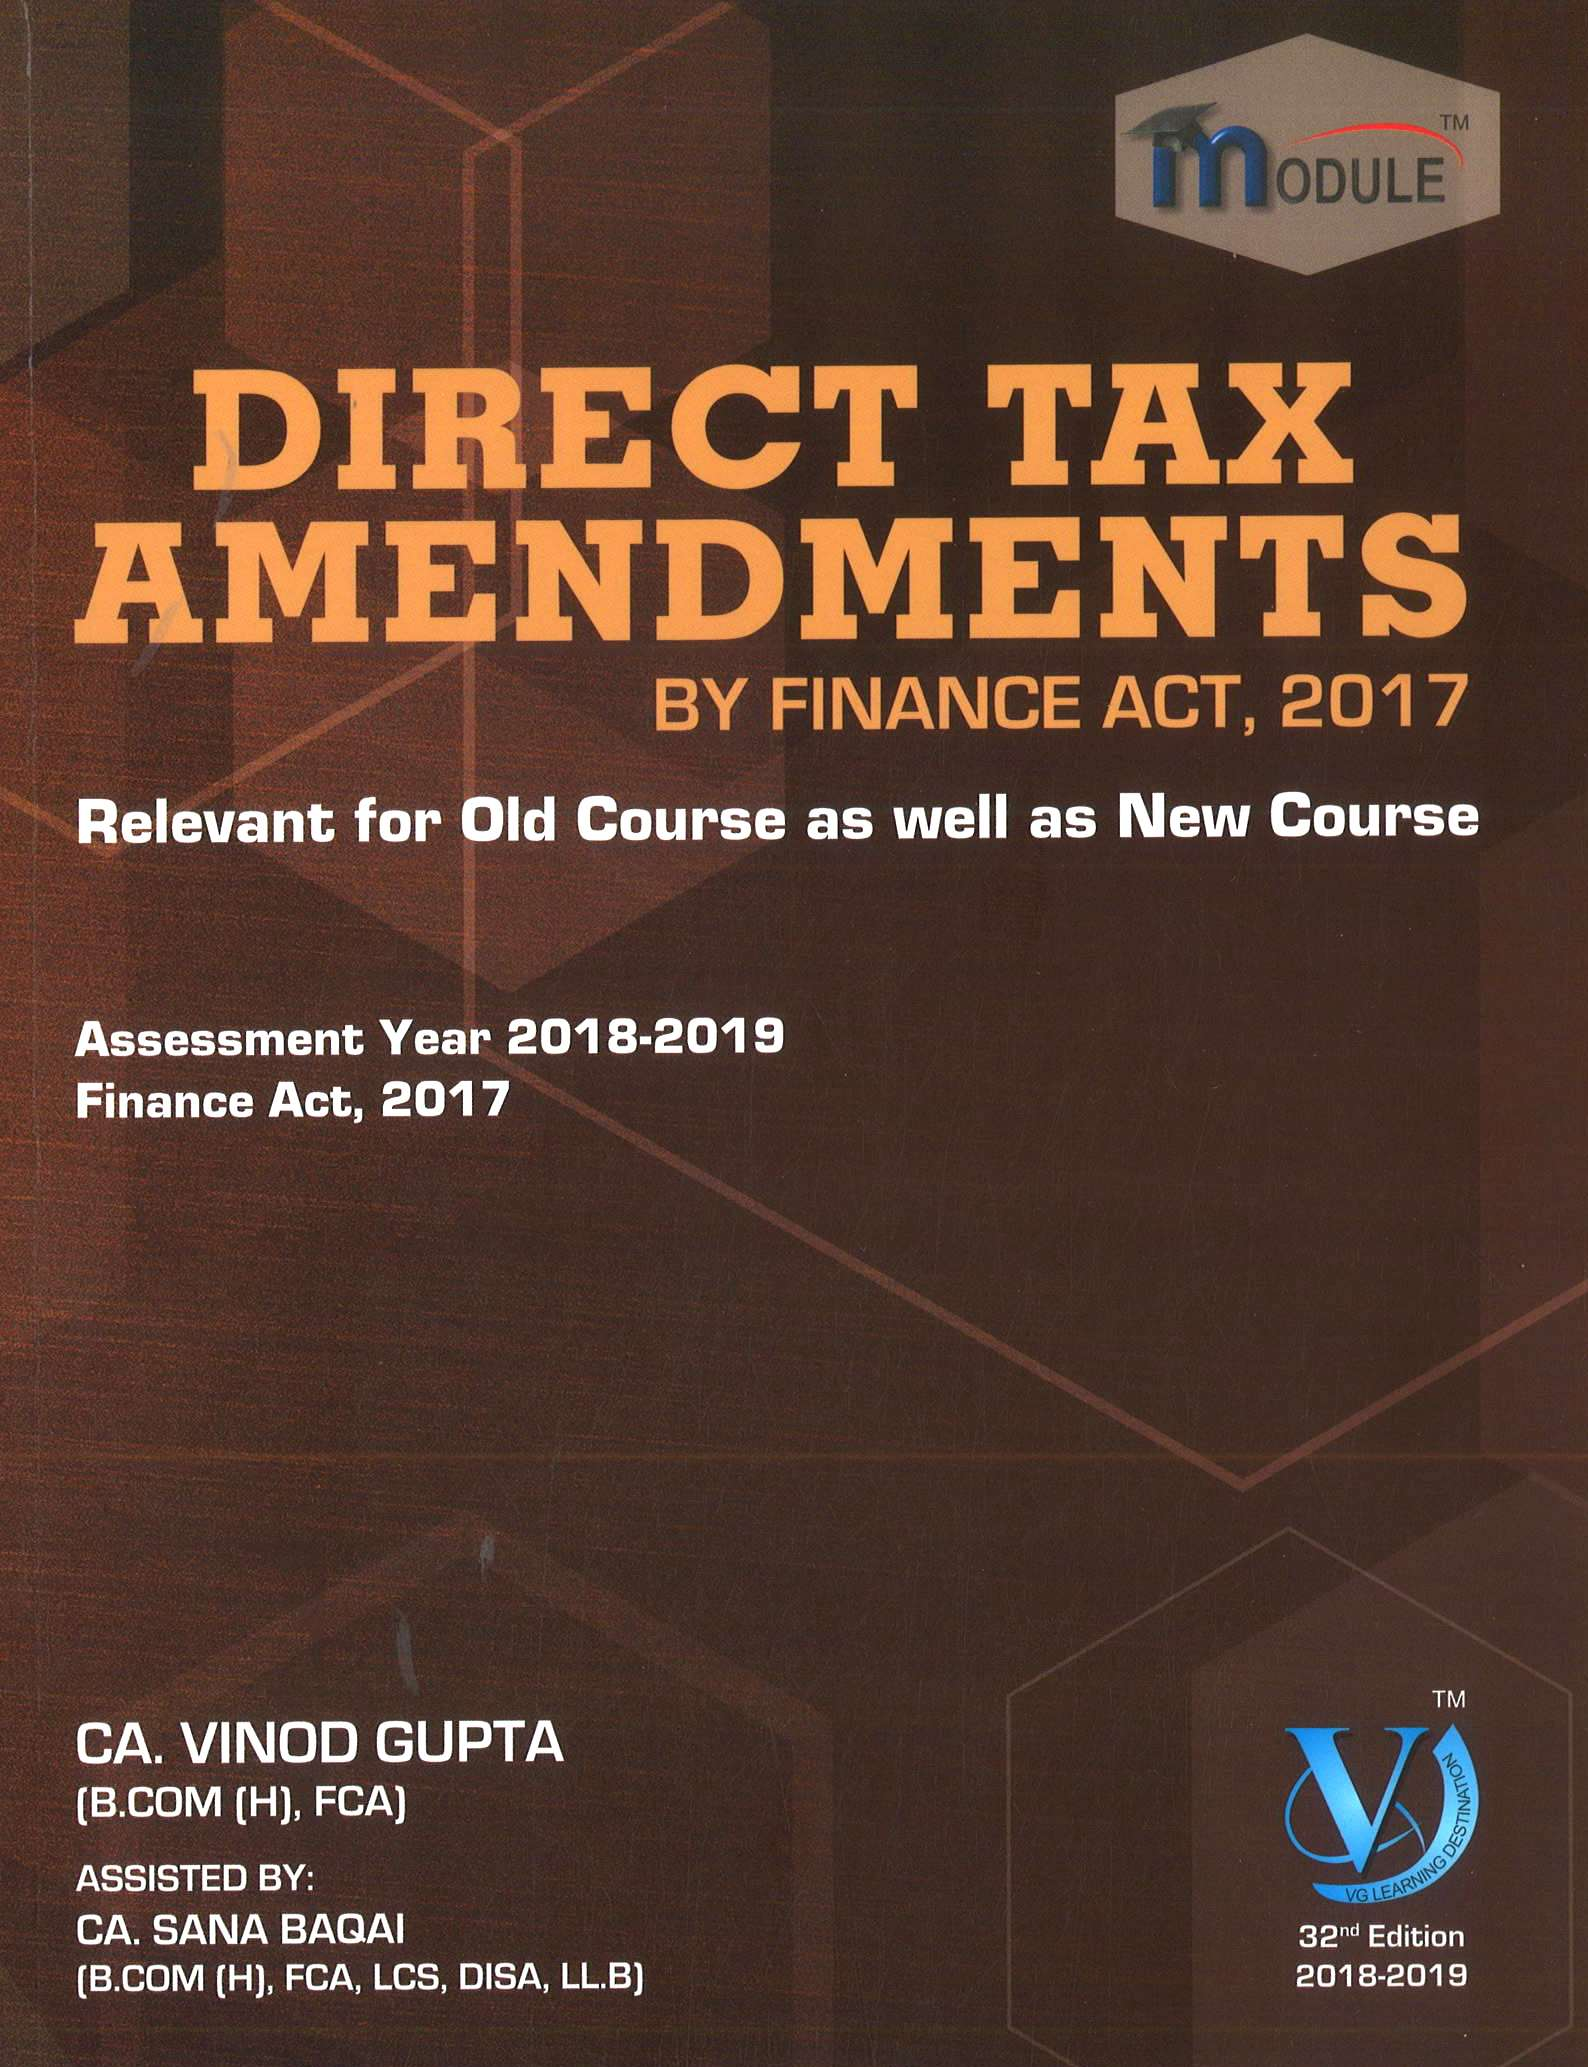 VG Learning Destination DIRECT TAX – AMENDMENT Module for CA Final by Vinod Gupta Applicable for May 2018 Exam (VG Learning Destination Publishing) Edition 2018